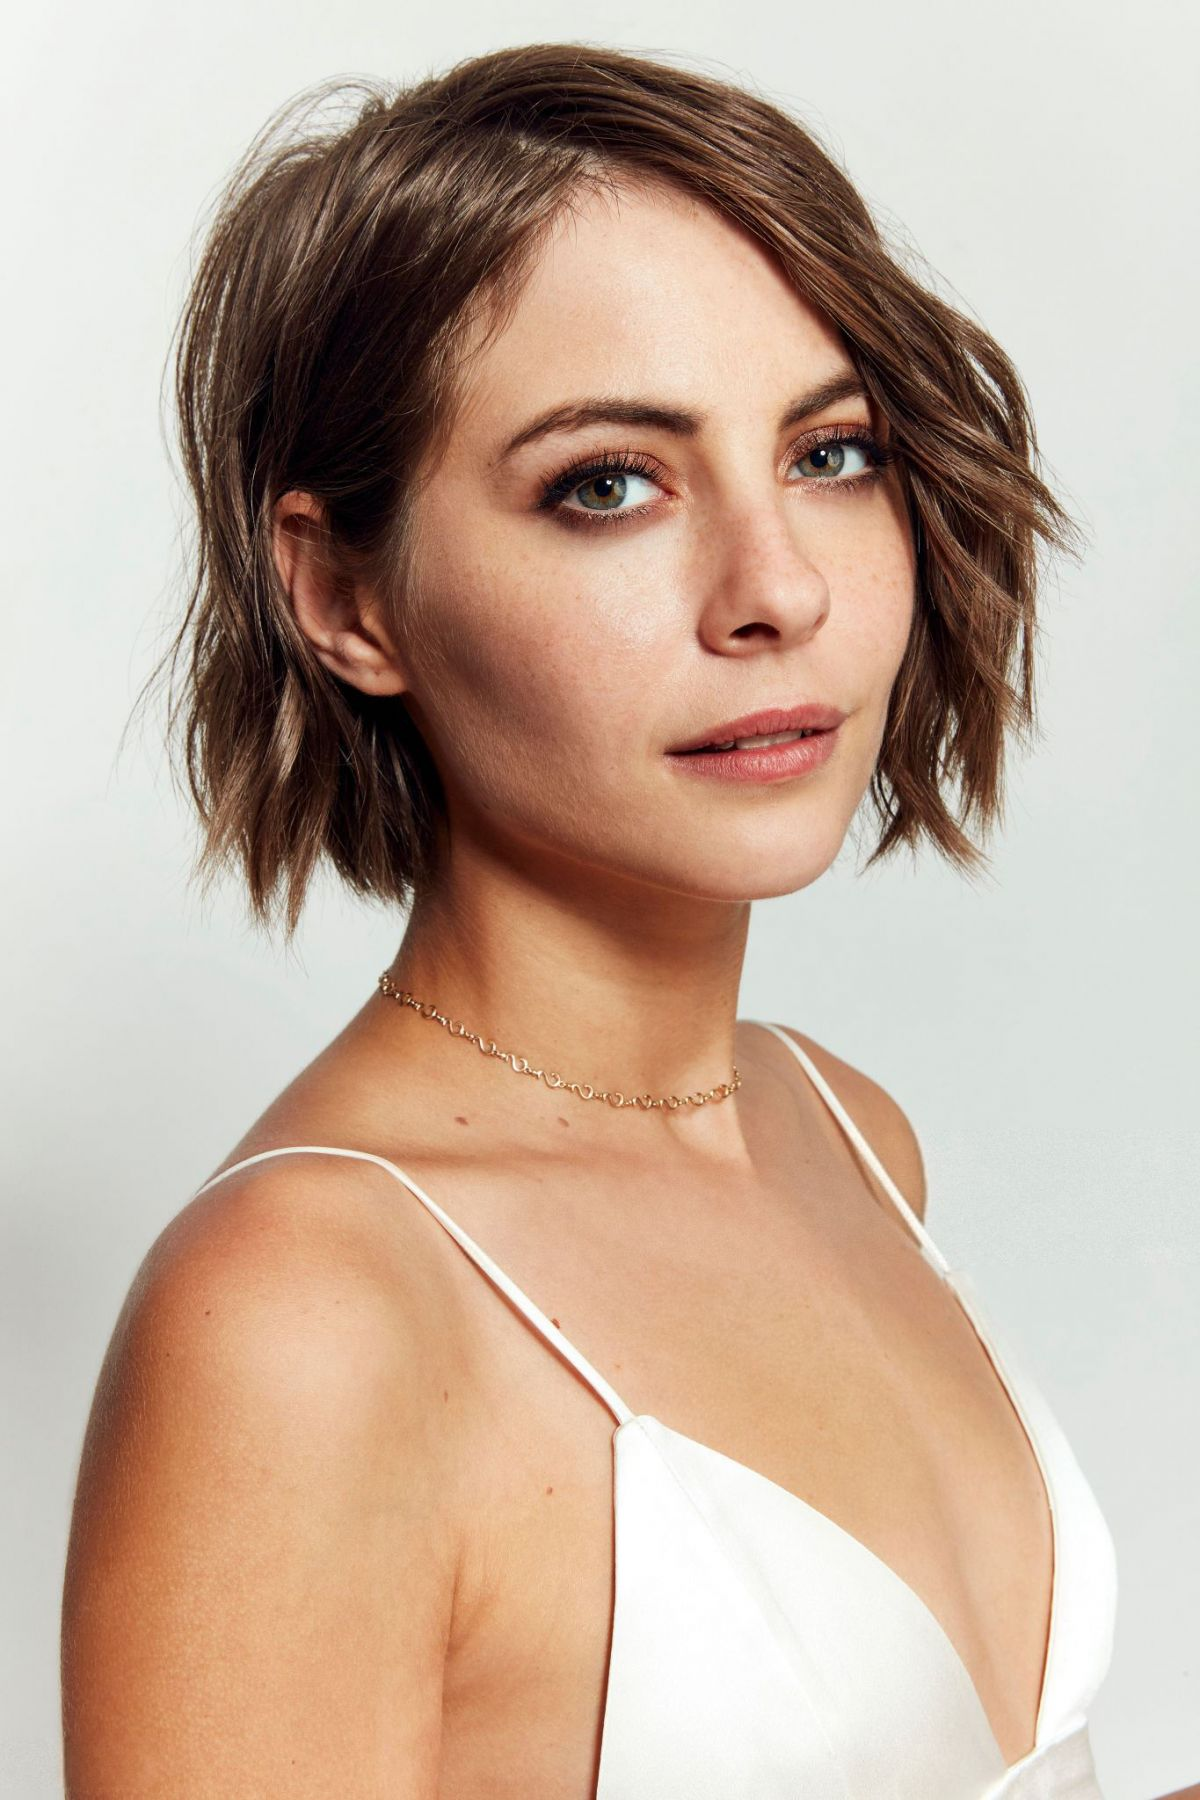 Willa Holland At Comic-Con 2017 Portraits by Robby Klein